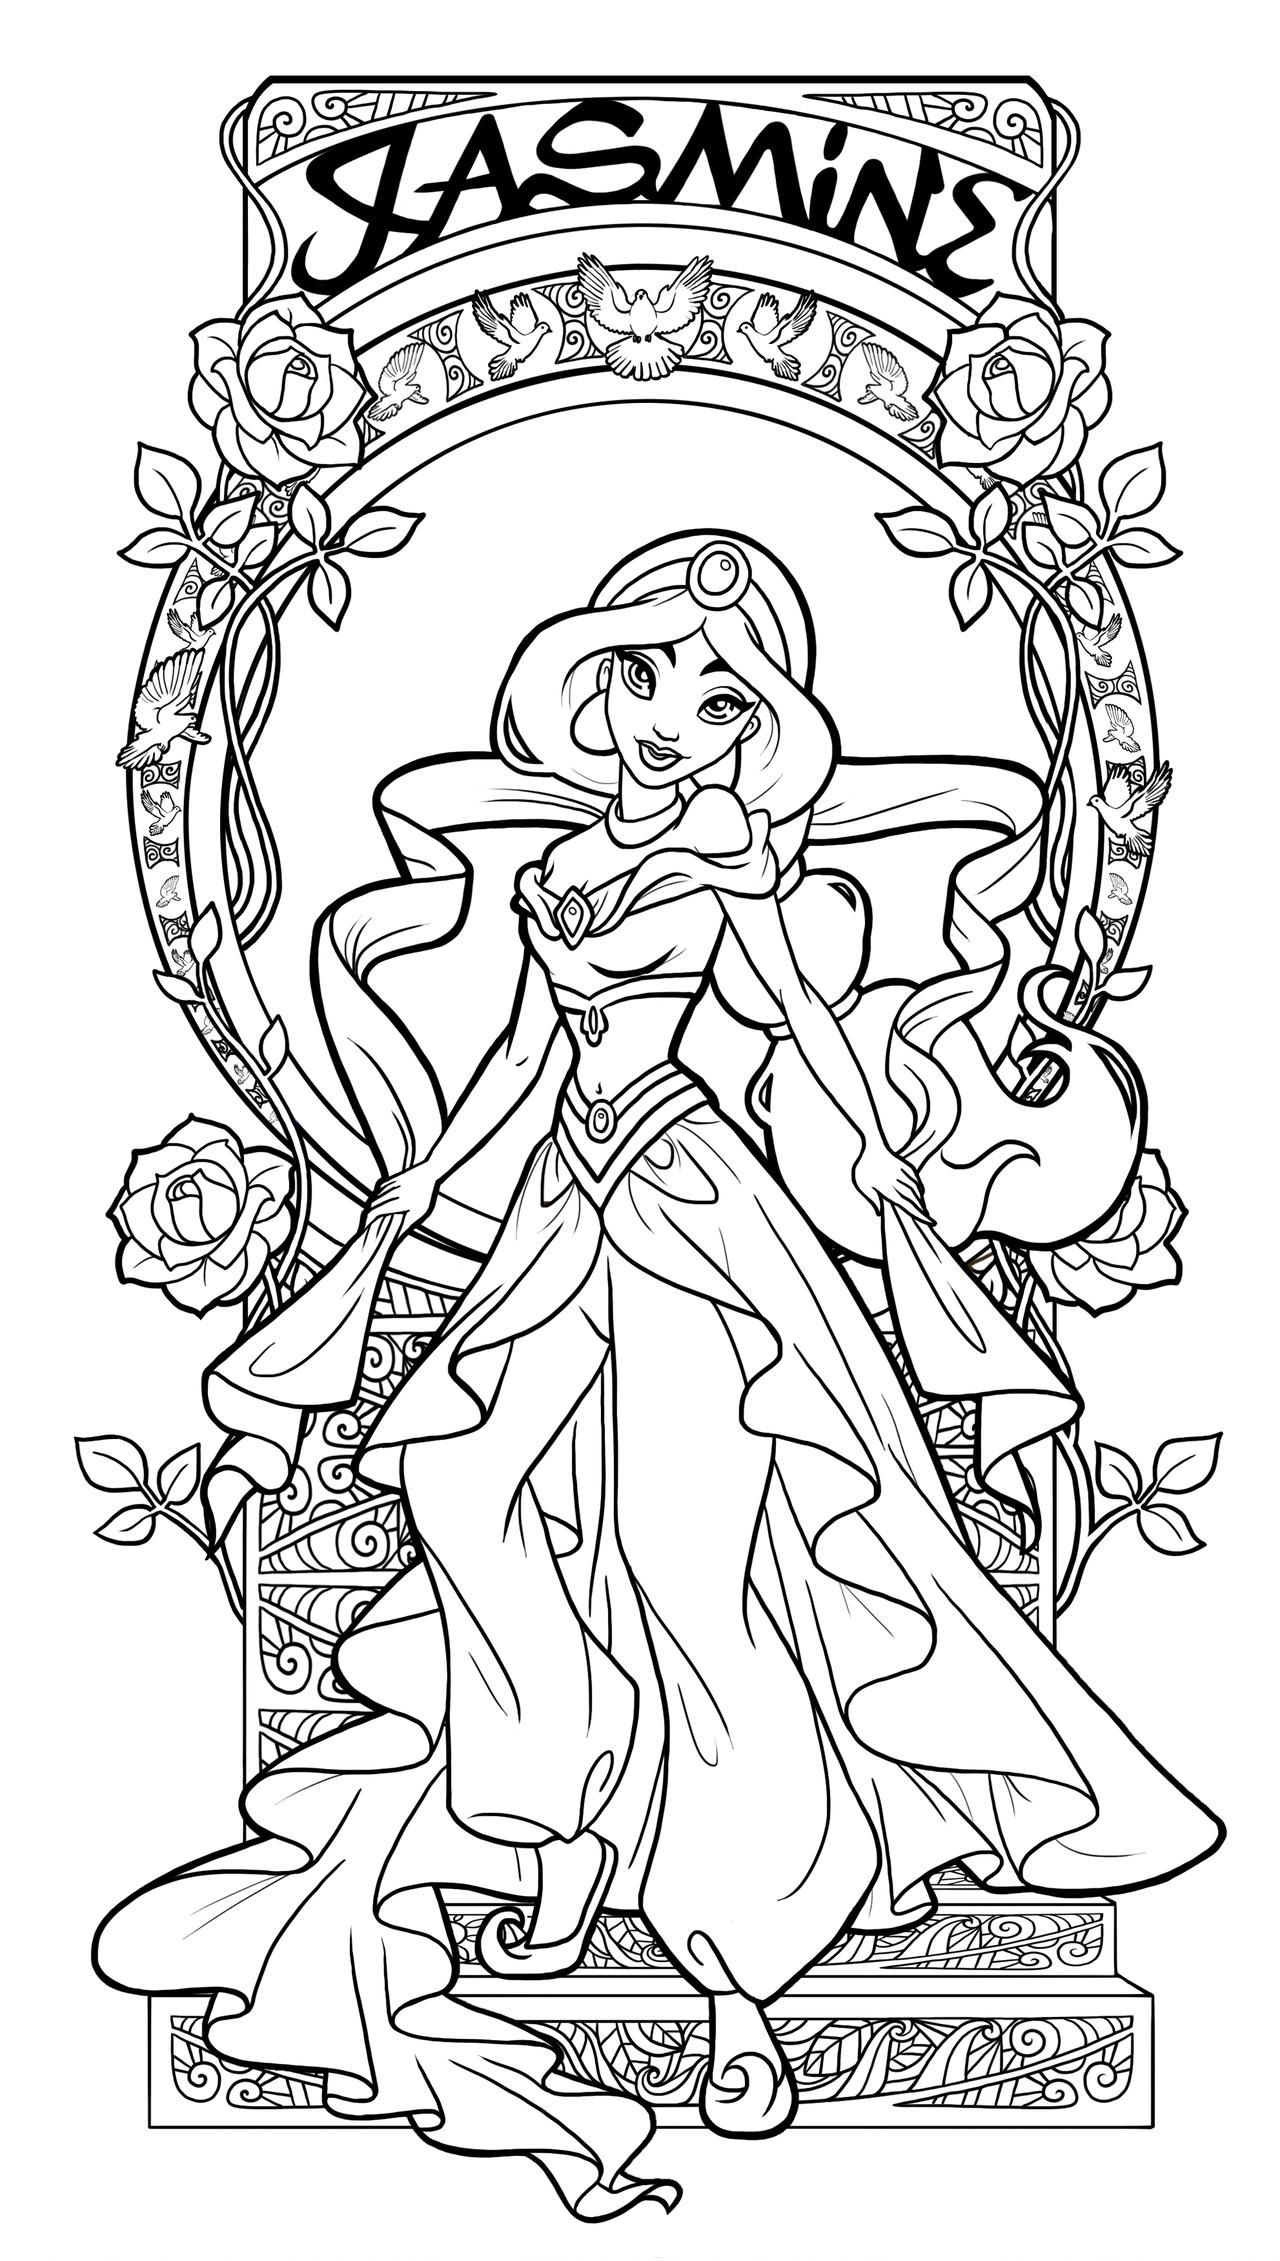 Jasmine Art Nouveau Lineart By Paola Tosca On Deviantart Disney Princess Coloring Pages Disney Coloring Pages Princess Coloring Pages